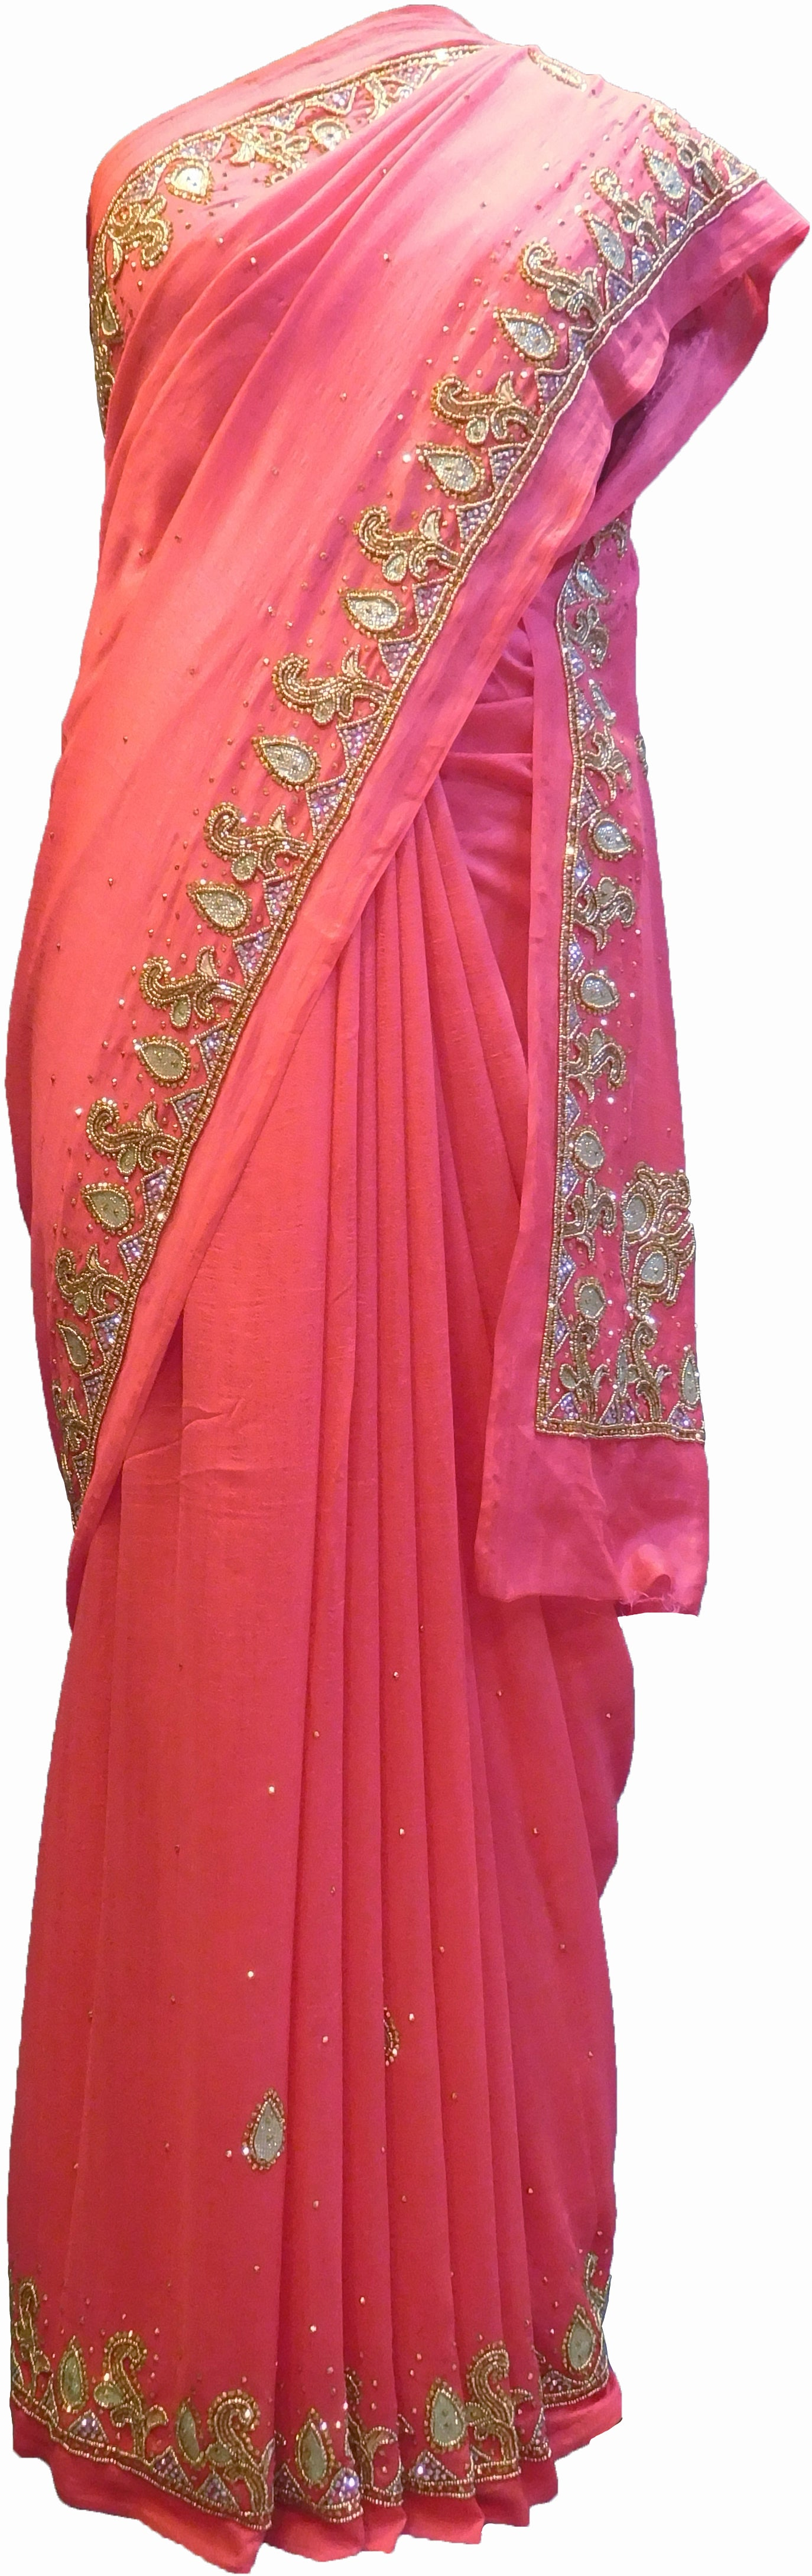 SMSAREE Pink Designer Wedding Partywear Silk (Vichitra) Zari Cutdana Thread Beads & Stone Hand Embroidery Work Bridal Saree Sari With Blouse Piece F192